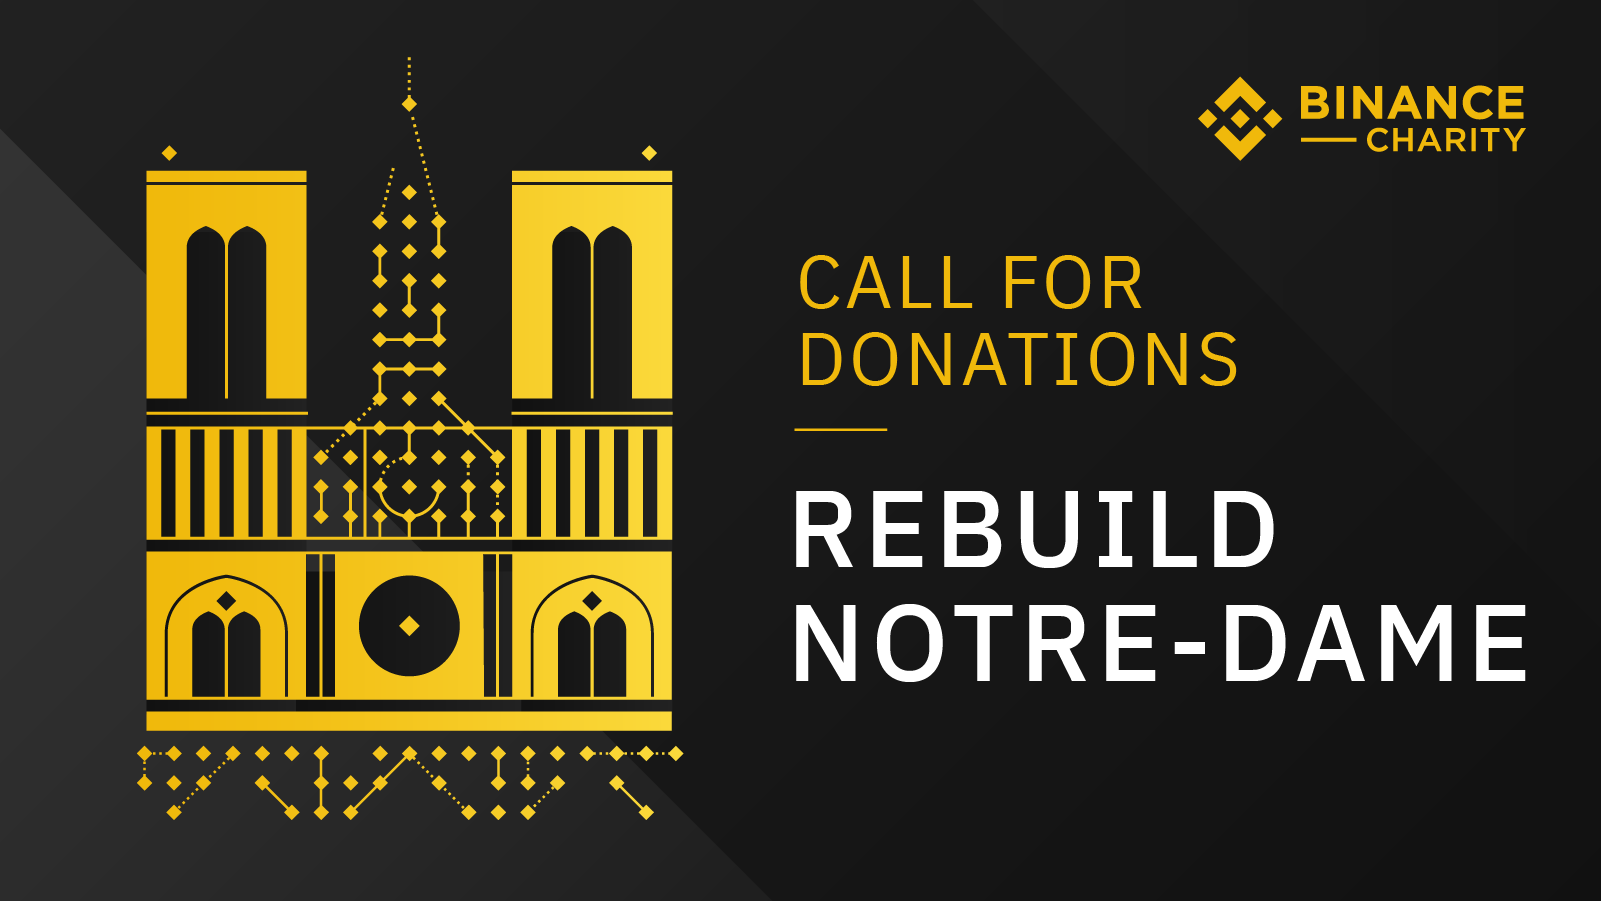 Binance calls for donations to rebuild Notre-Dame